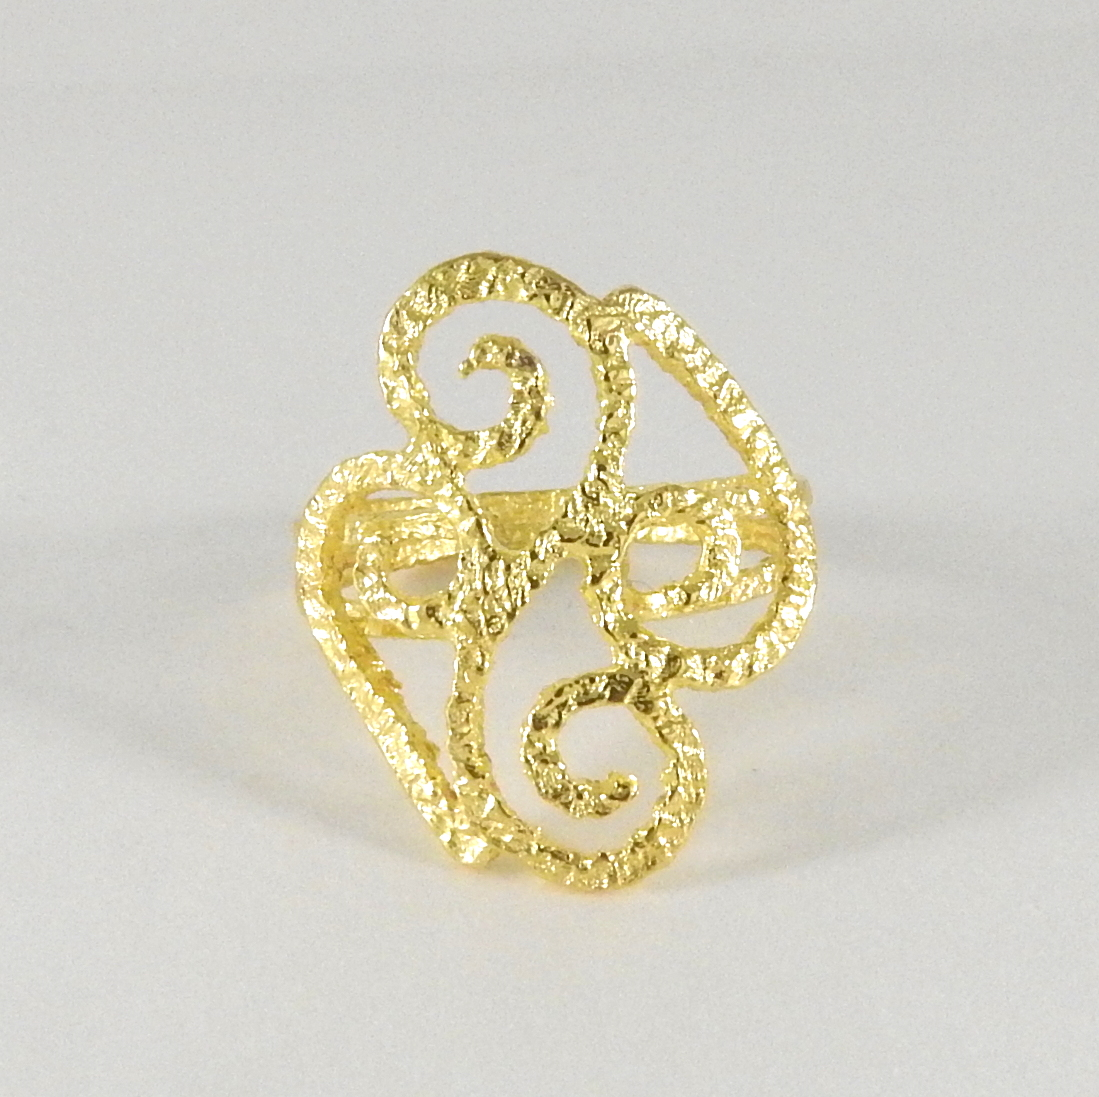 filigree-ring-7152.jpg